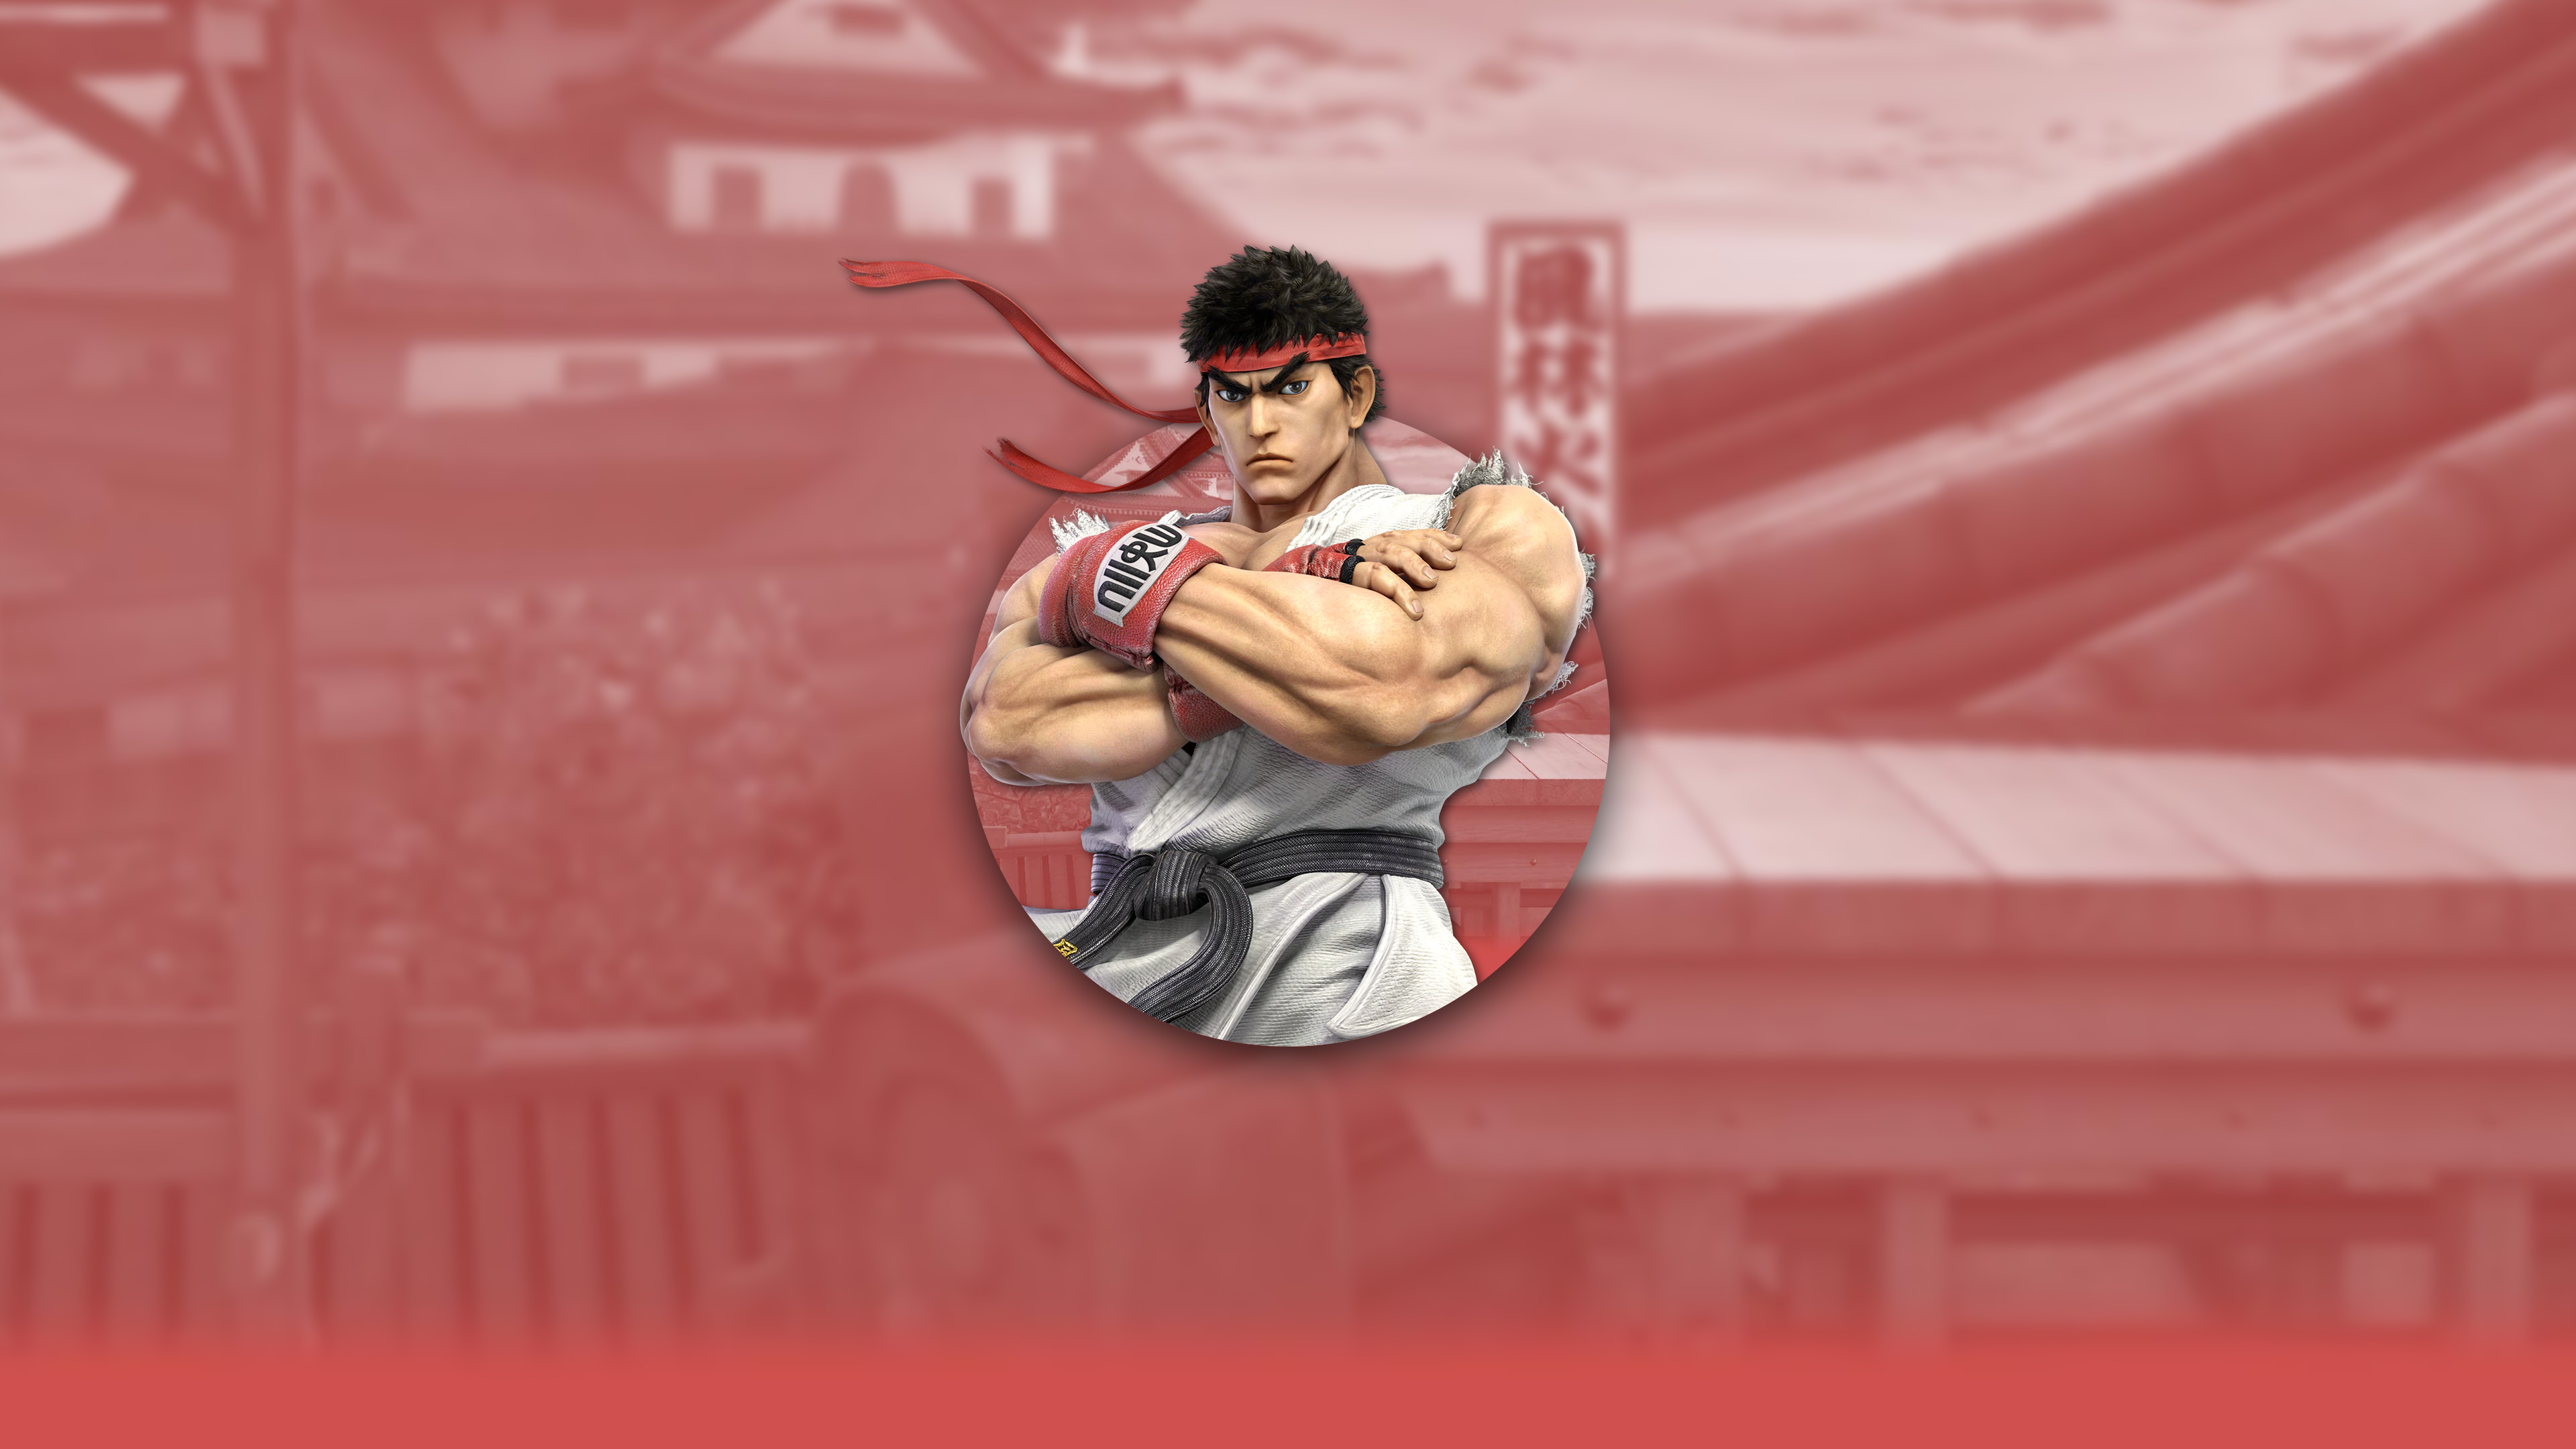 super smash bros ultimate ryu uhd 4k wallpaper